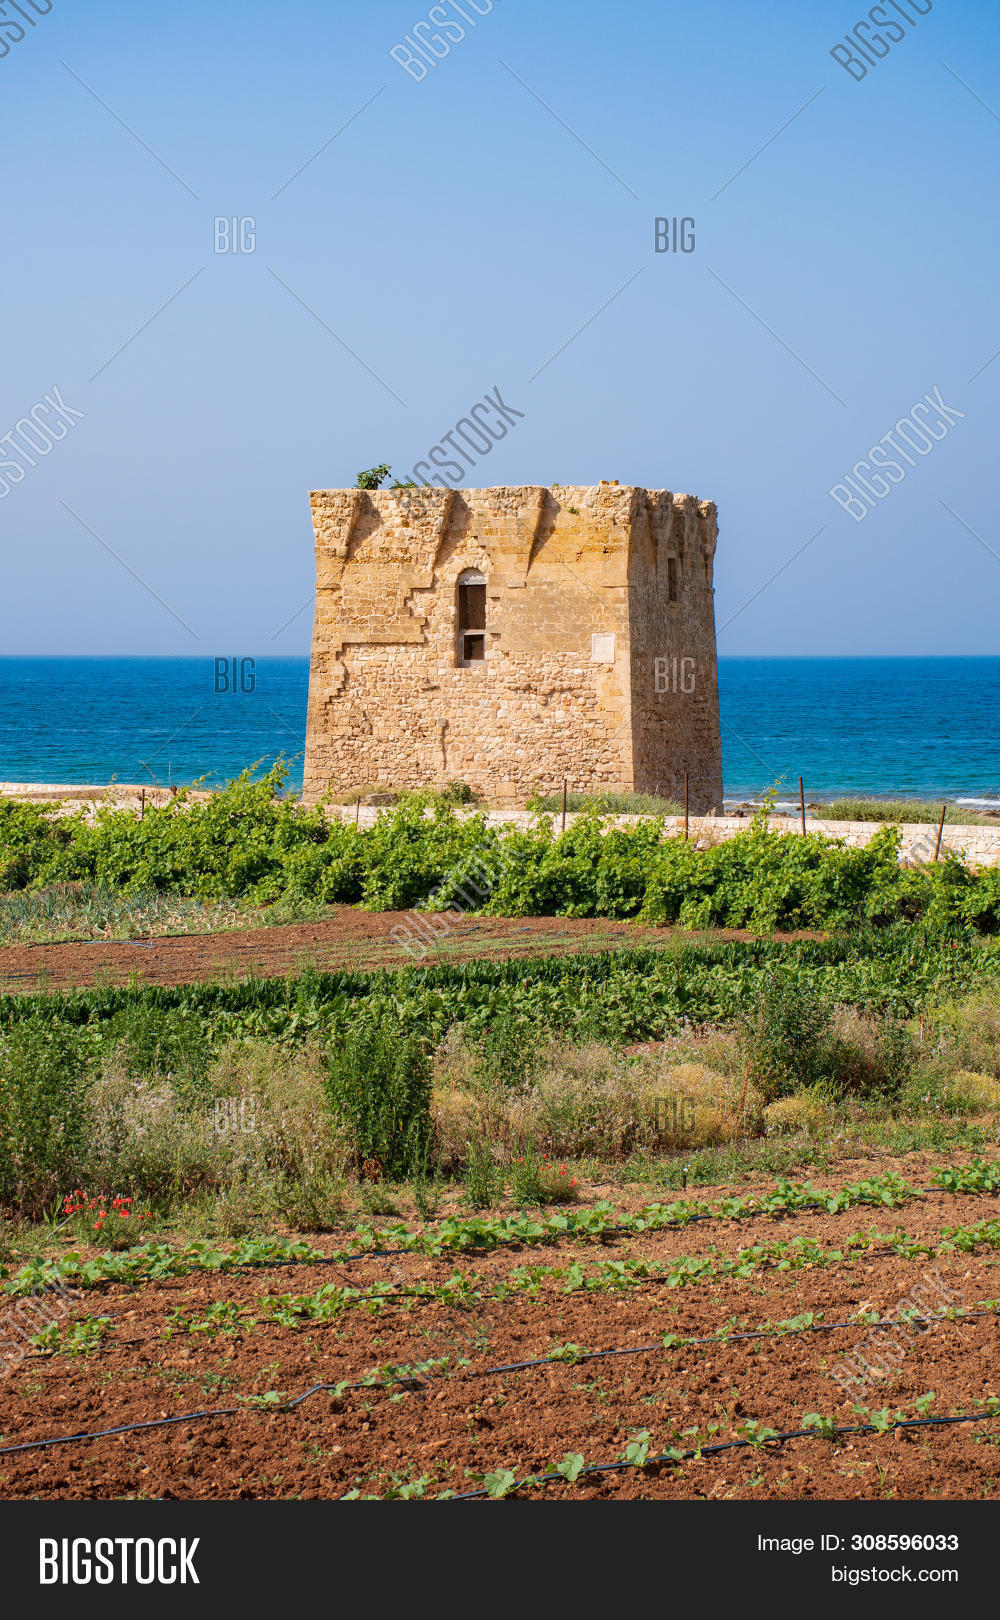 Baroque Watchtower, Beautiful Old Tower In San Vito, Polignano A Mare, Bari, Puglia, Italy With With